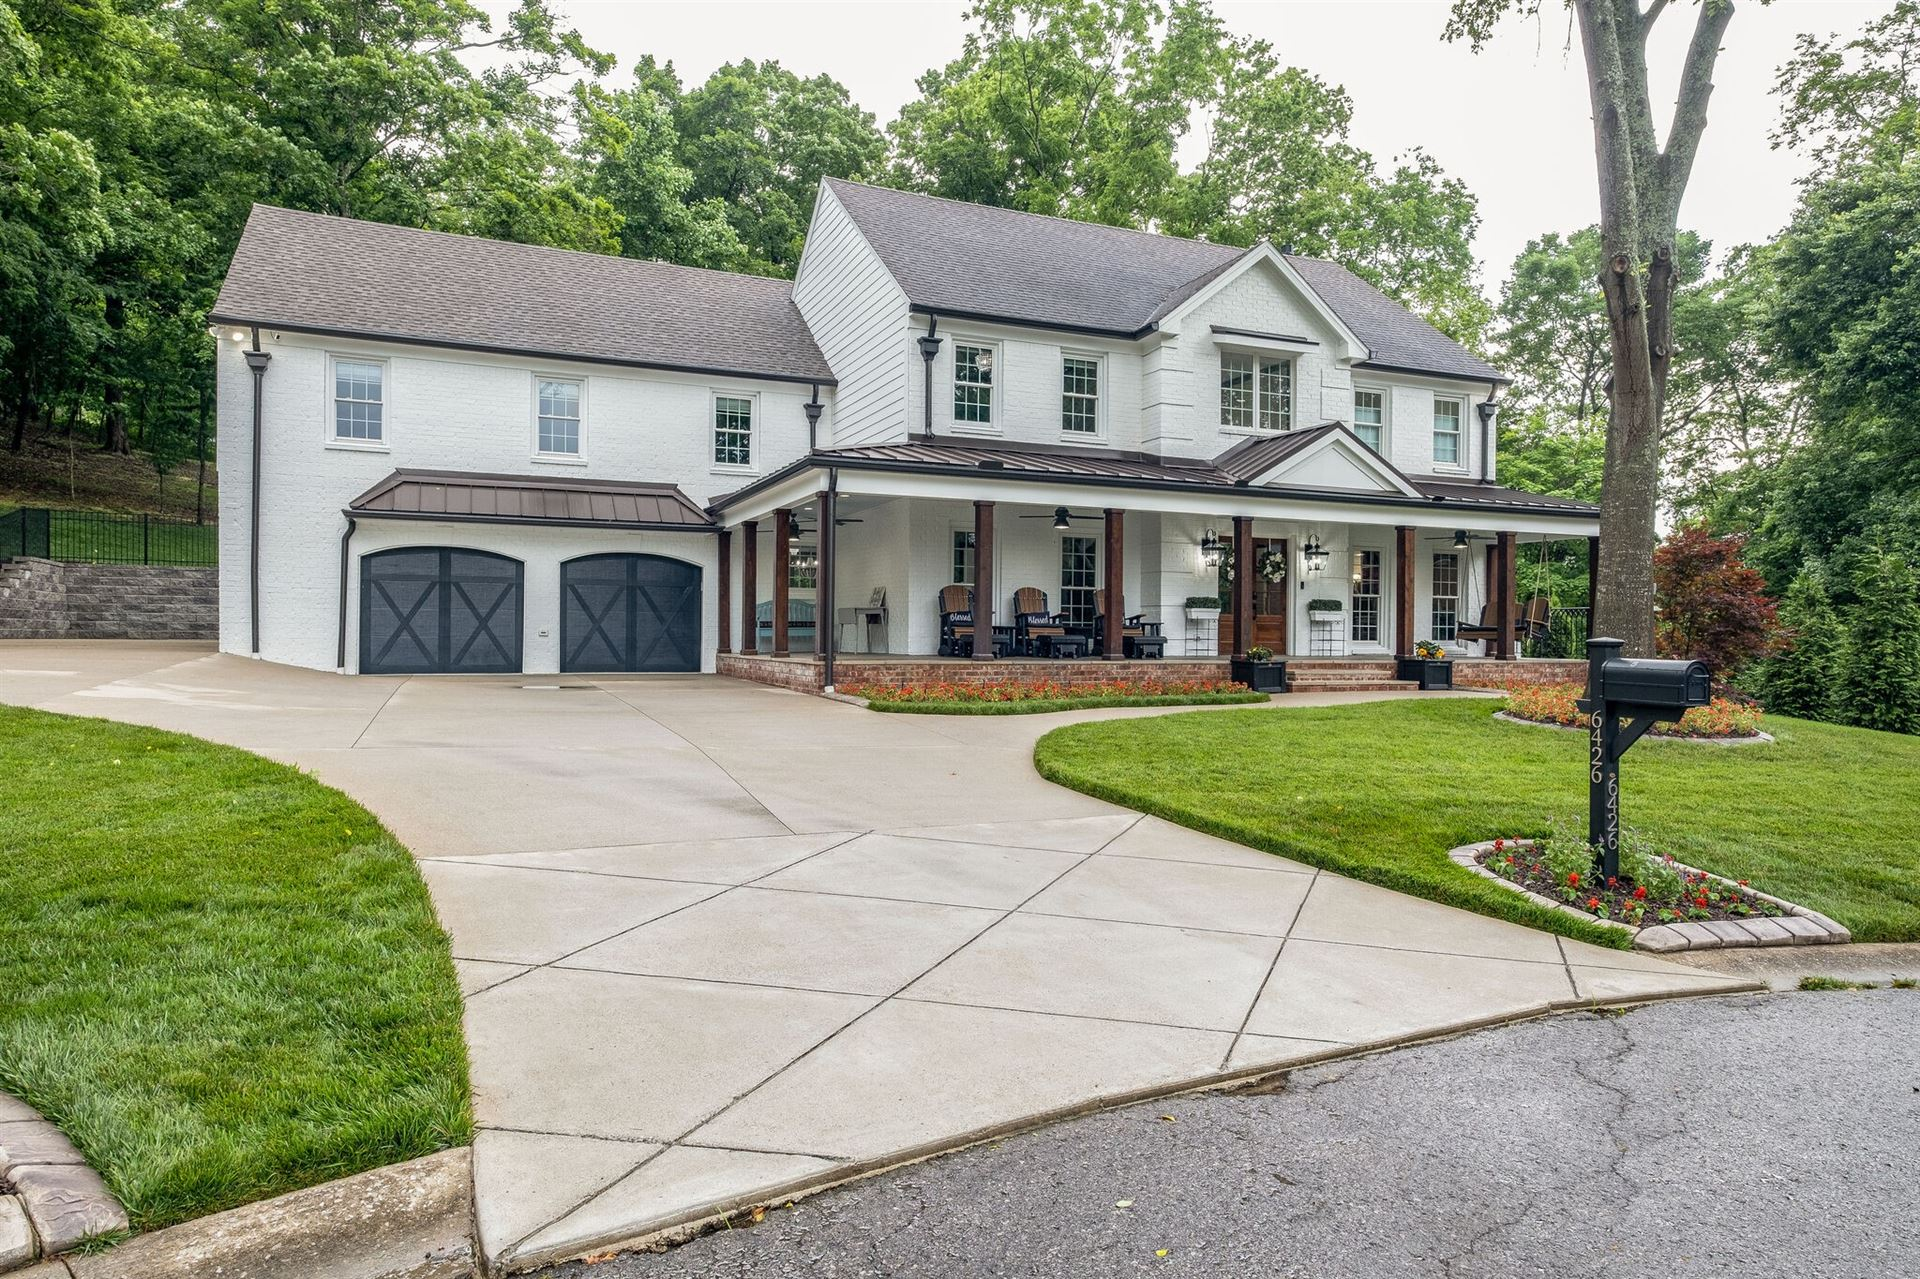 Photo of 6426 Annandale Cove, Brentwood, TN 37027 (MLS # 2260204)